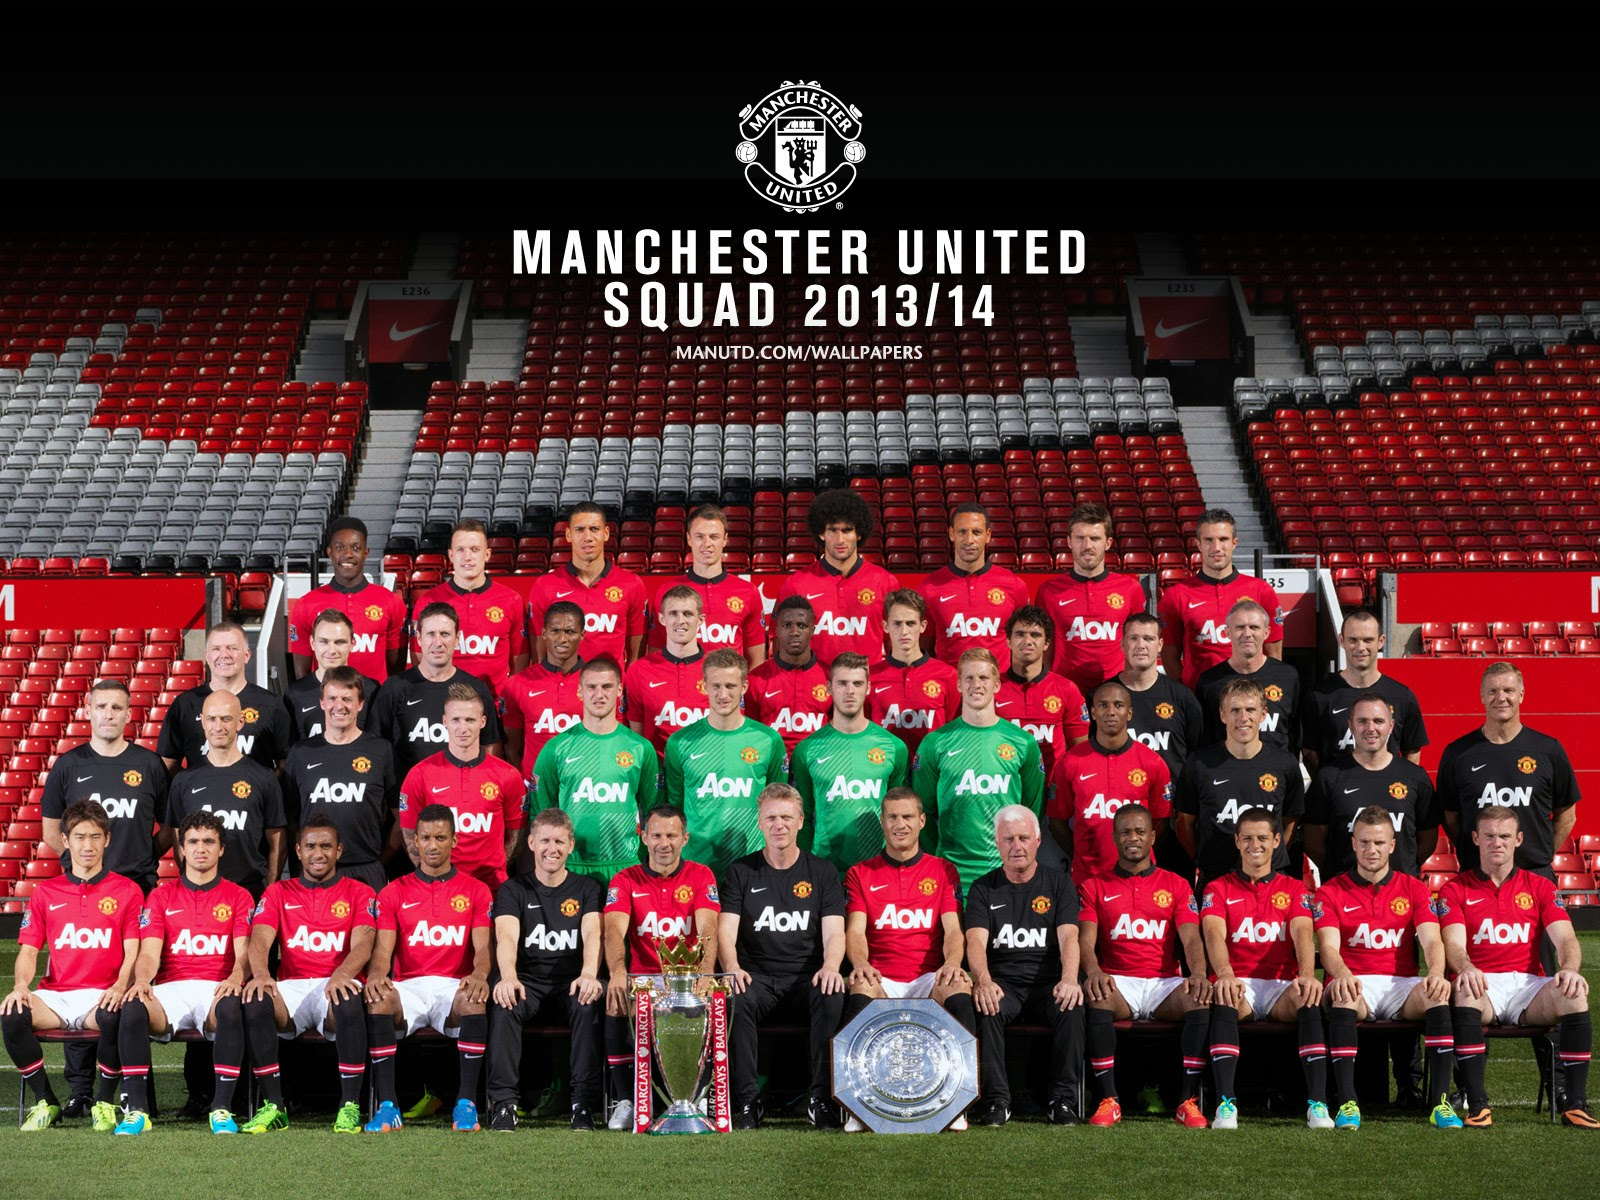 Manchester united 20132014 squad wallpaper download Manchester 1600x1200